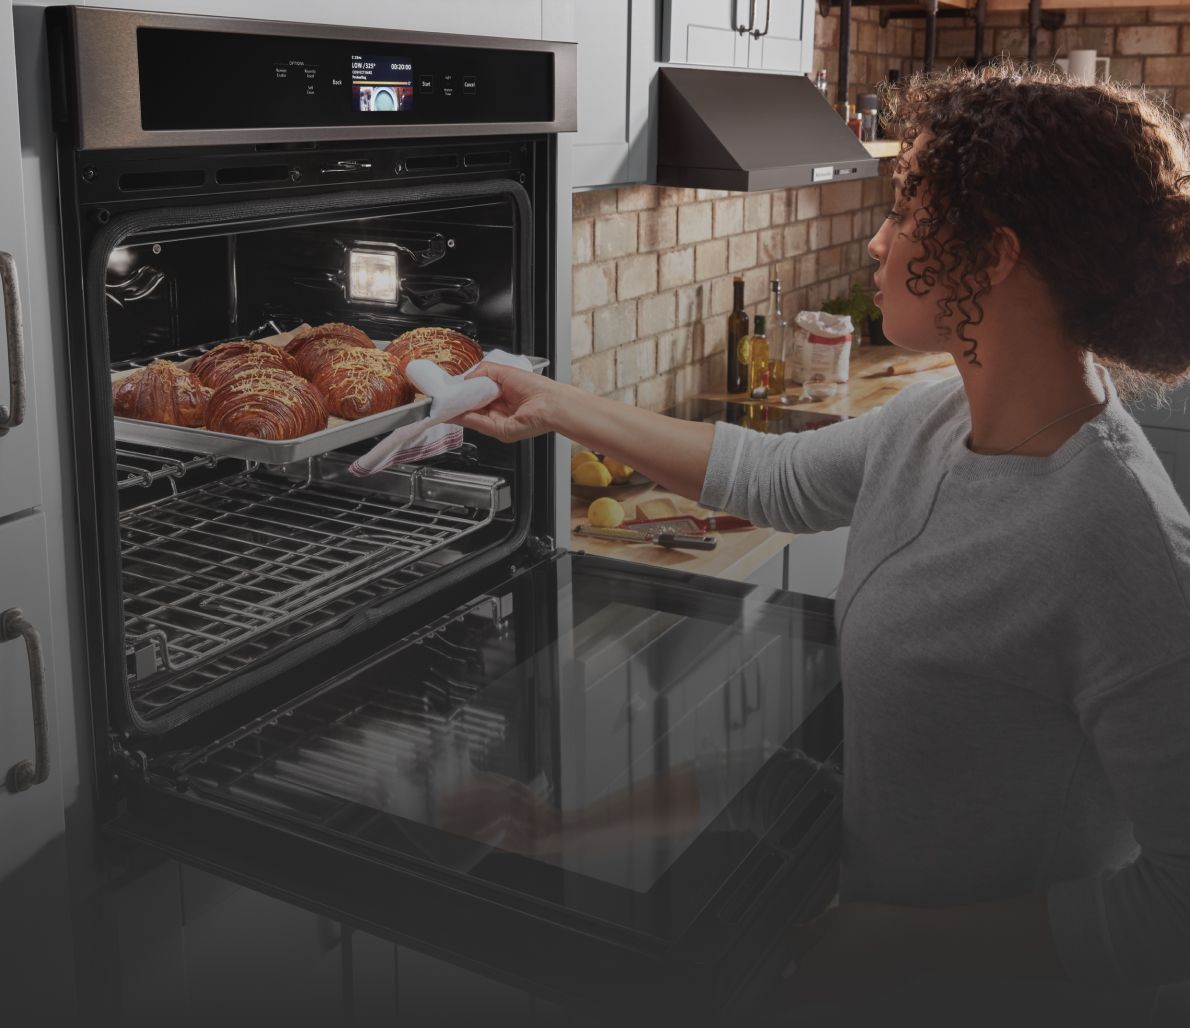 Baking in a KitchenAid® wall oven.